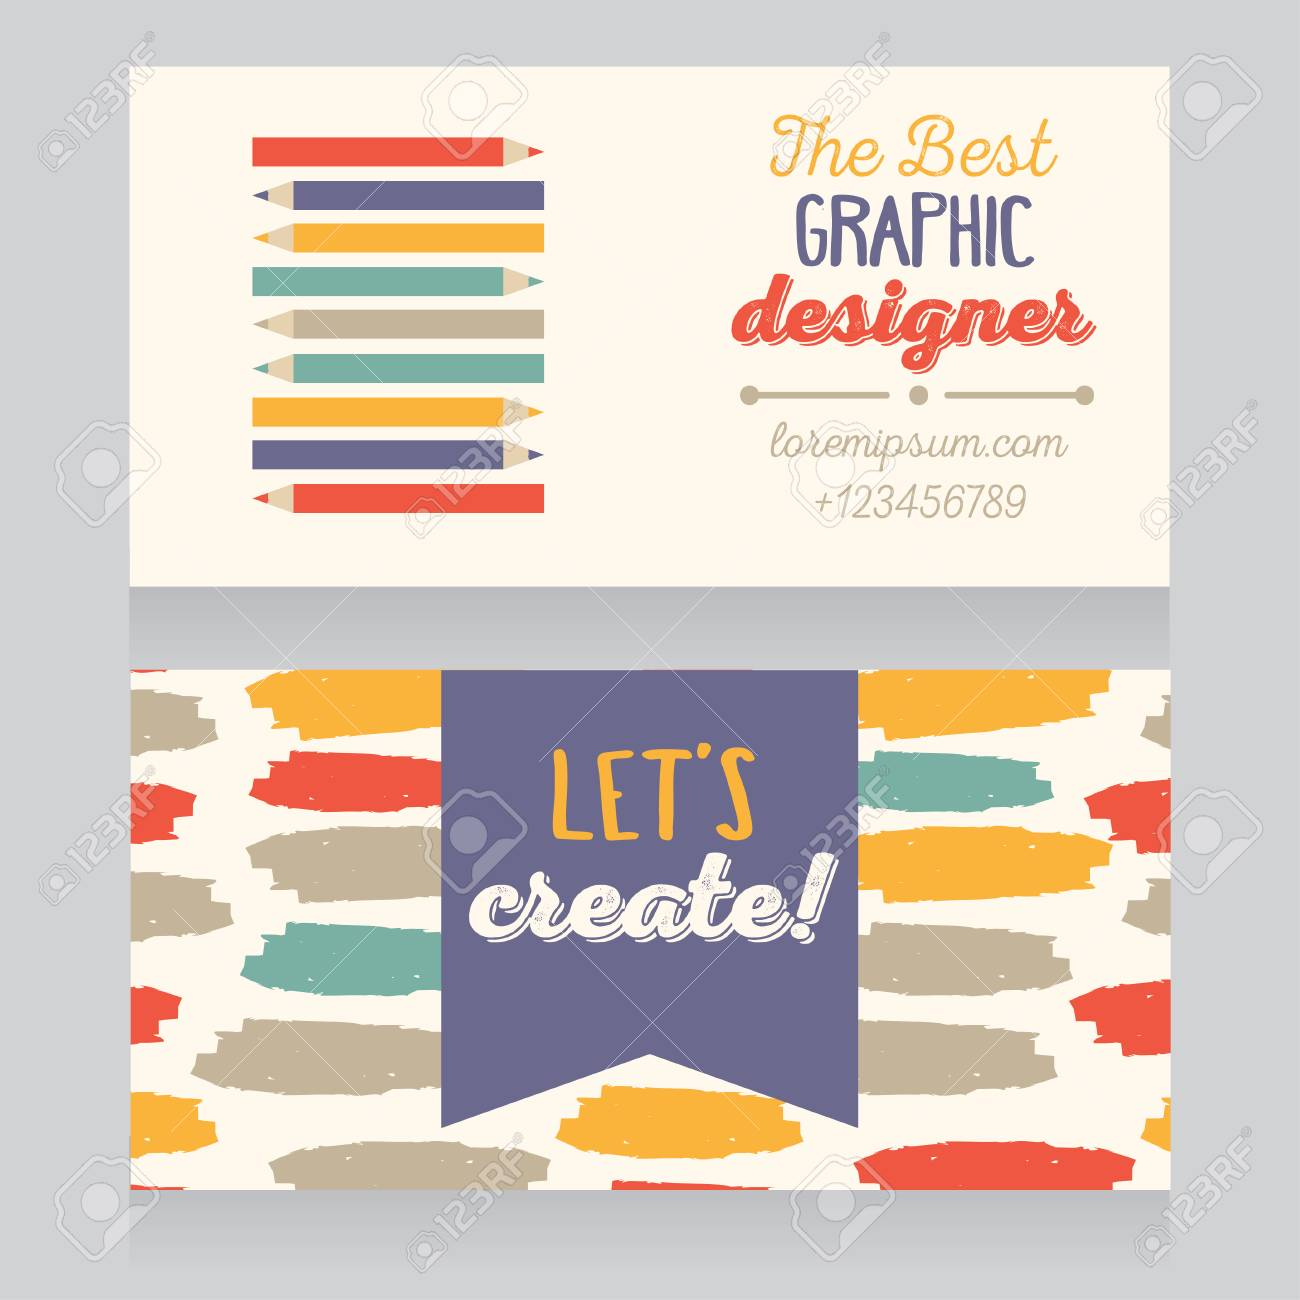 Business card template for graphic designer or creative agency business card template for graphic designer or creative agency vector illustration stock vector 74609141 colourmoves